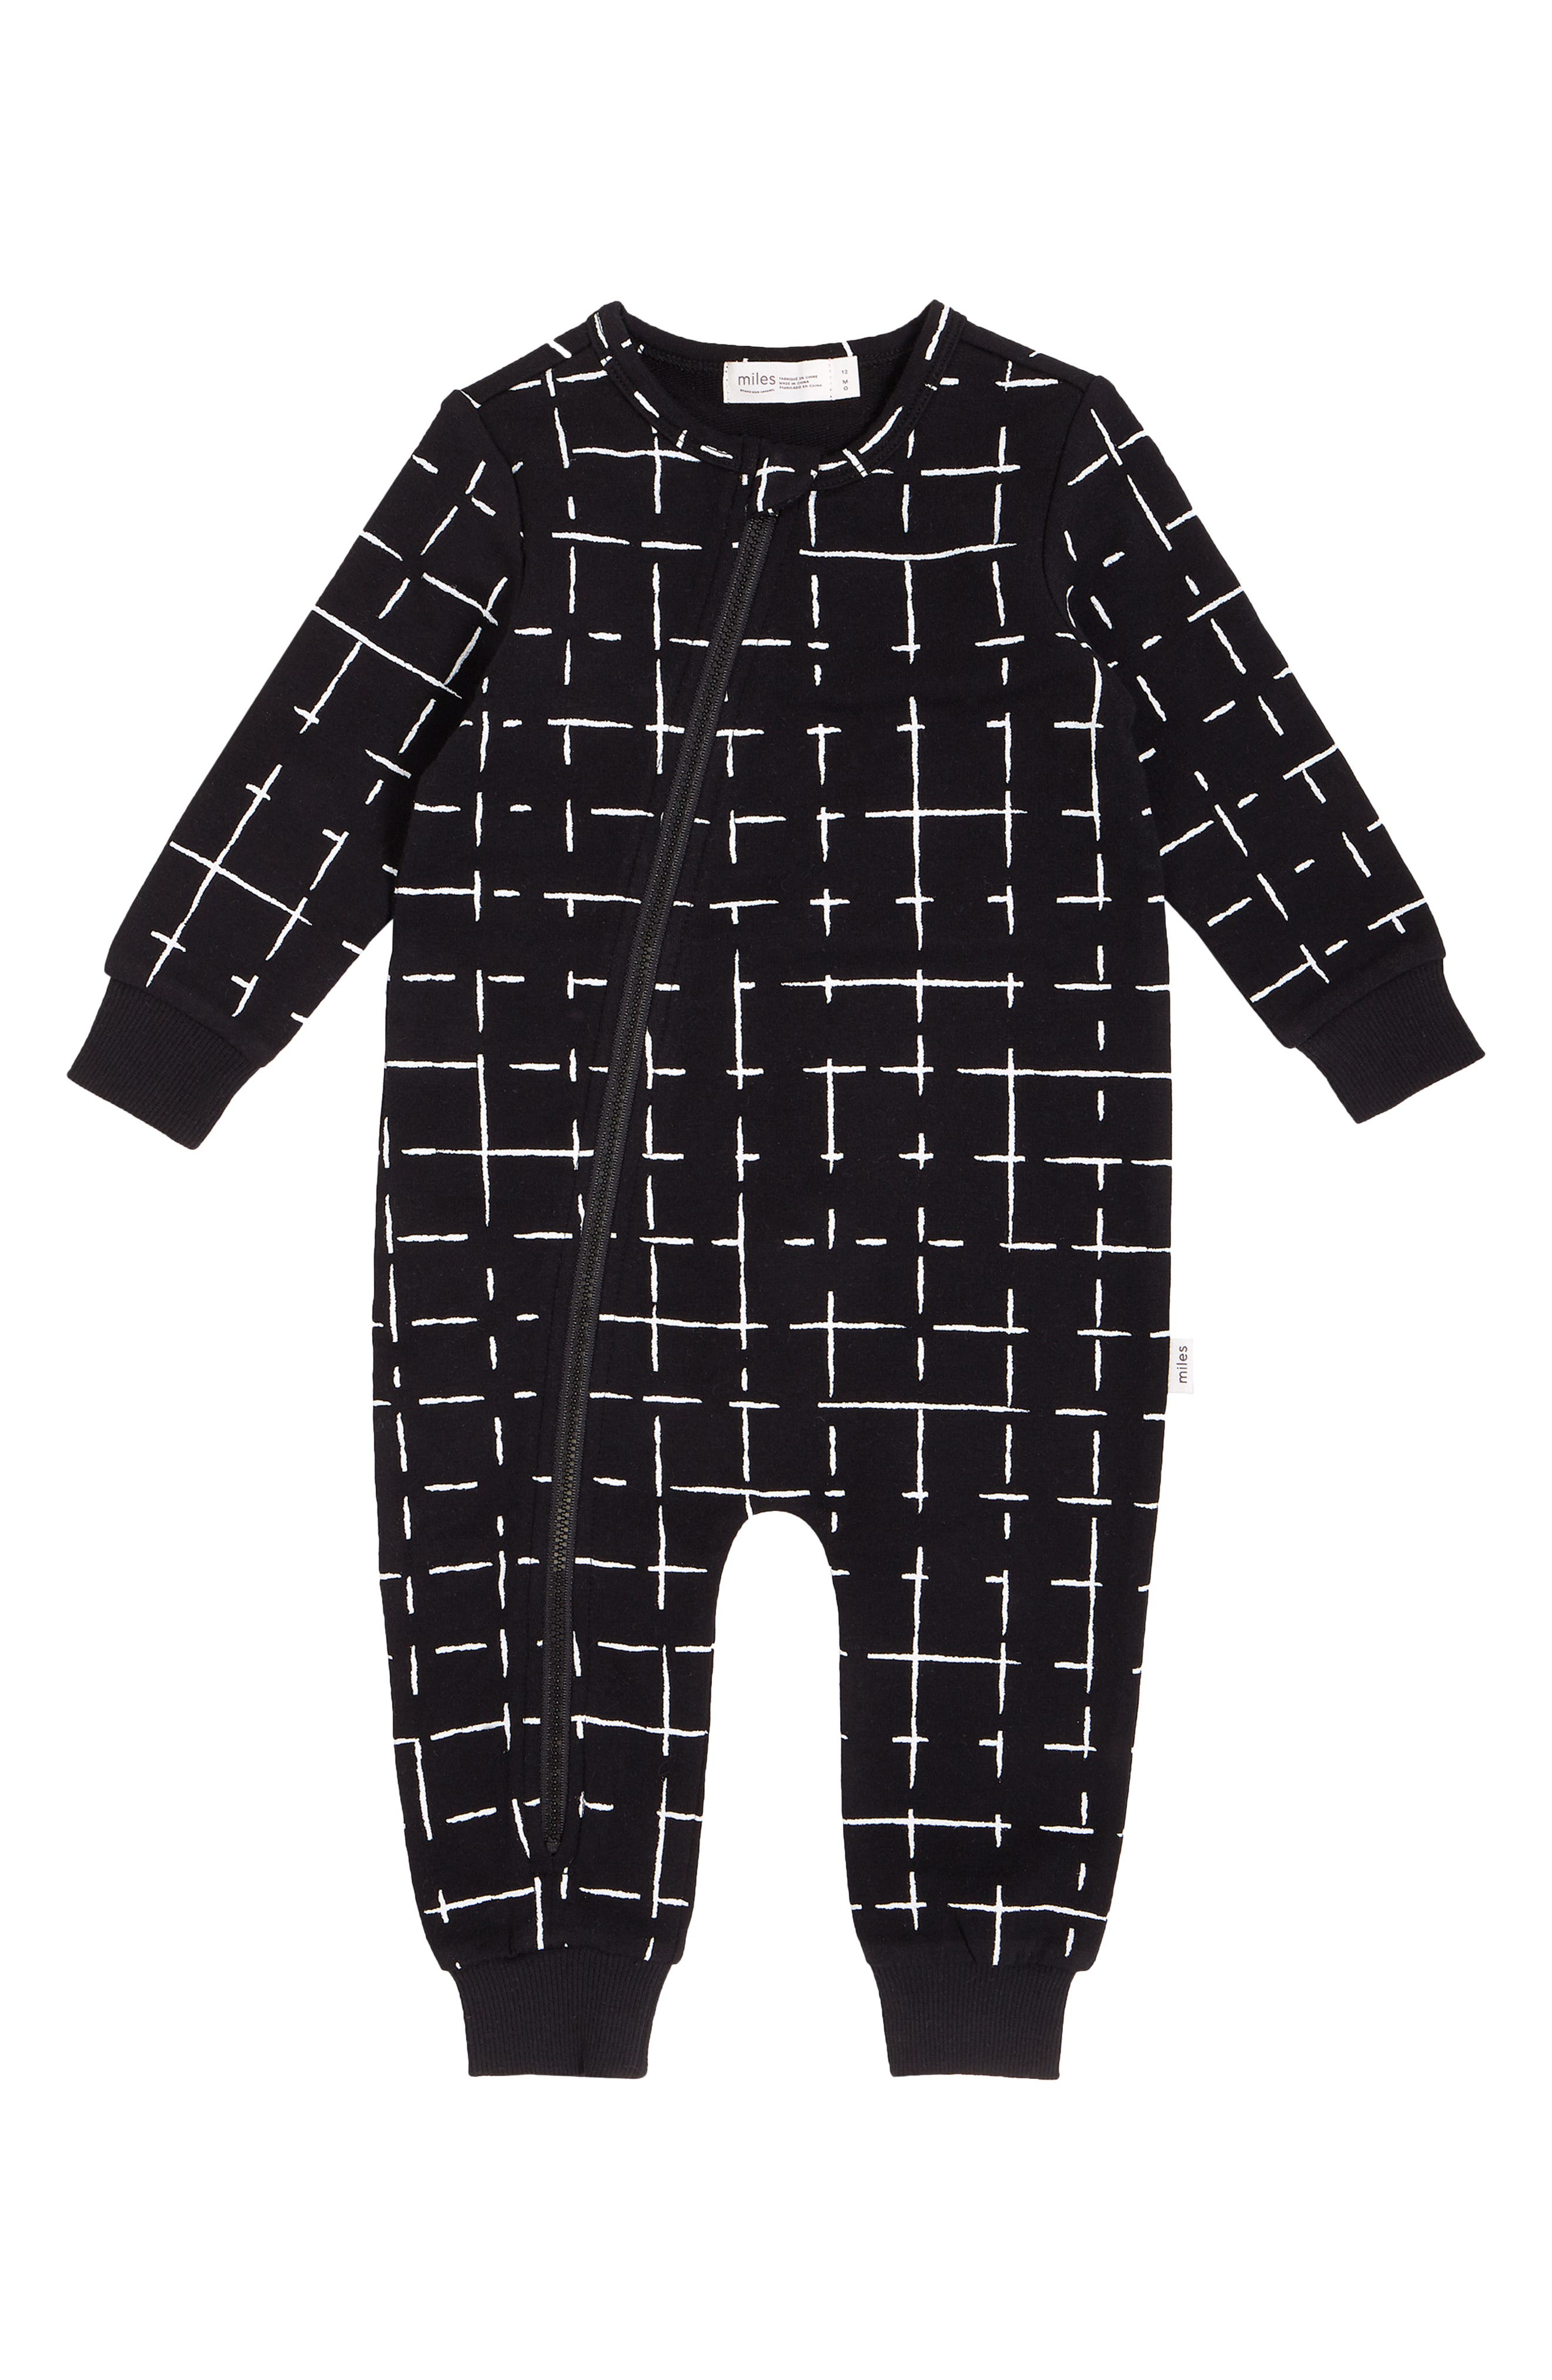 Give your little one a cozy cuddle in this soft cotton romper that\\\'s easy on you and him thanks to a top-to-bottom zipper fixed with a no-scratch chin guard. Style Name: Miles Baby Asymmetrical Zip Romper (Baby). Style Number: 6087366. Available in stores.